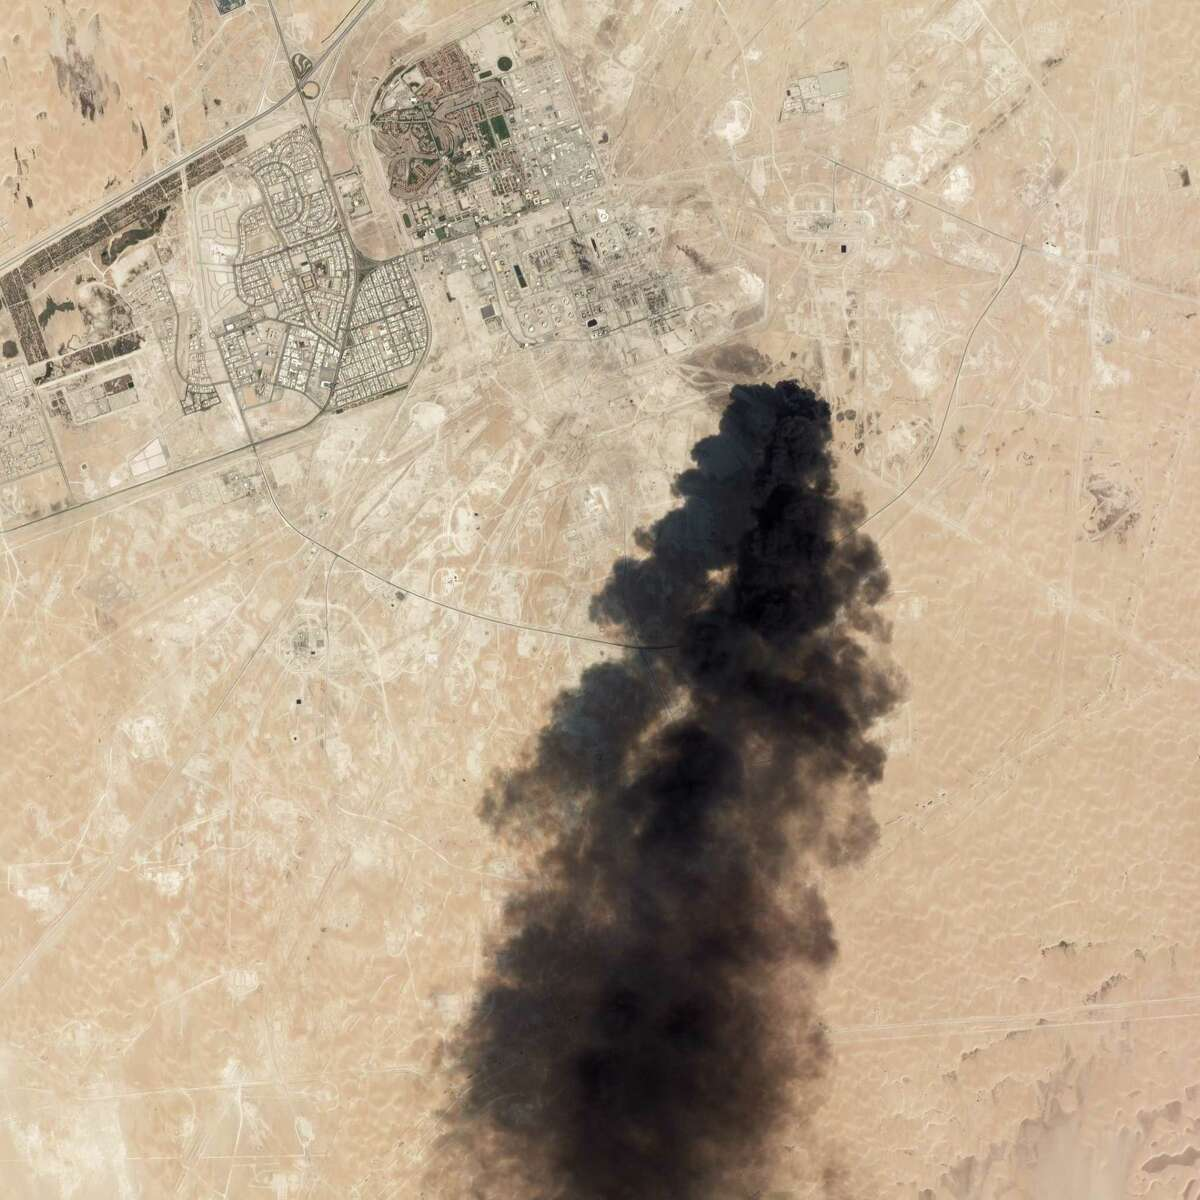 """This satellite overview handout image obtained September 16, 2019 courtesy of Planet Labs Inc. shows damage to oil/gas infrastructure from weekend drone attacks at Abqaig on September 14 2019 in Saudi Arabia. - Drone attacks on key Saudi oil facilities have halved crude output from OPEC's biggest exporter, catapulting oil prices by the largest amount since the first Gulf War. The crisis has focused minds on unrest in the crude-rich Middle East, with Tehran denying Washington's charge that it was responsible.Brent oil prices leapt 20 percent on Monday to chalk up the biggest intra-day daily gain since 1991. (Photo by HO / PLANET LABS INC. / AFP) / RESTRICTED TO EDITORIAL USE - MANDATORY CREDIT """"AFP PHOTO / Planet Labs Inc. / HO"""" - NO MARKETING NO ADVERTISING CAMPAIGNS - DISTRIBUTED AS A SERVICE TO CLIENTS == NO ARCHIVEHO/AFP/Getty Images"""